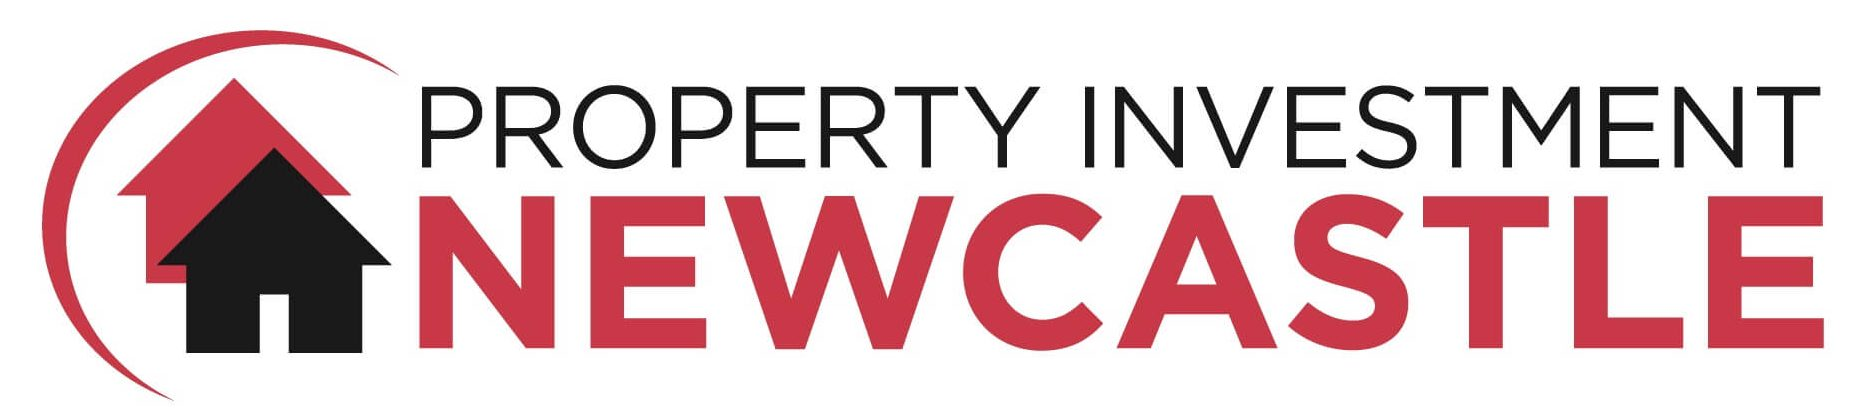 Property Investment Newcastle Logo